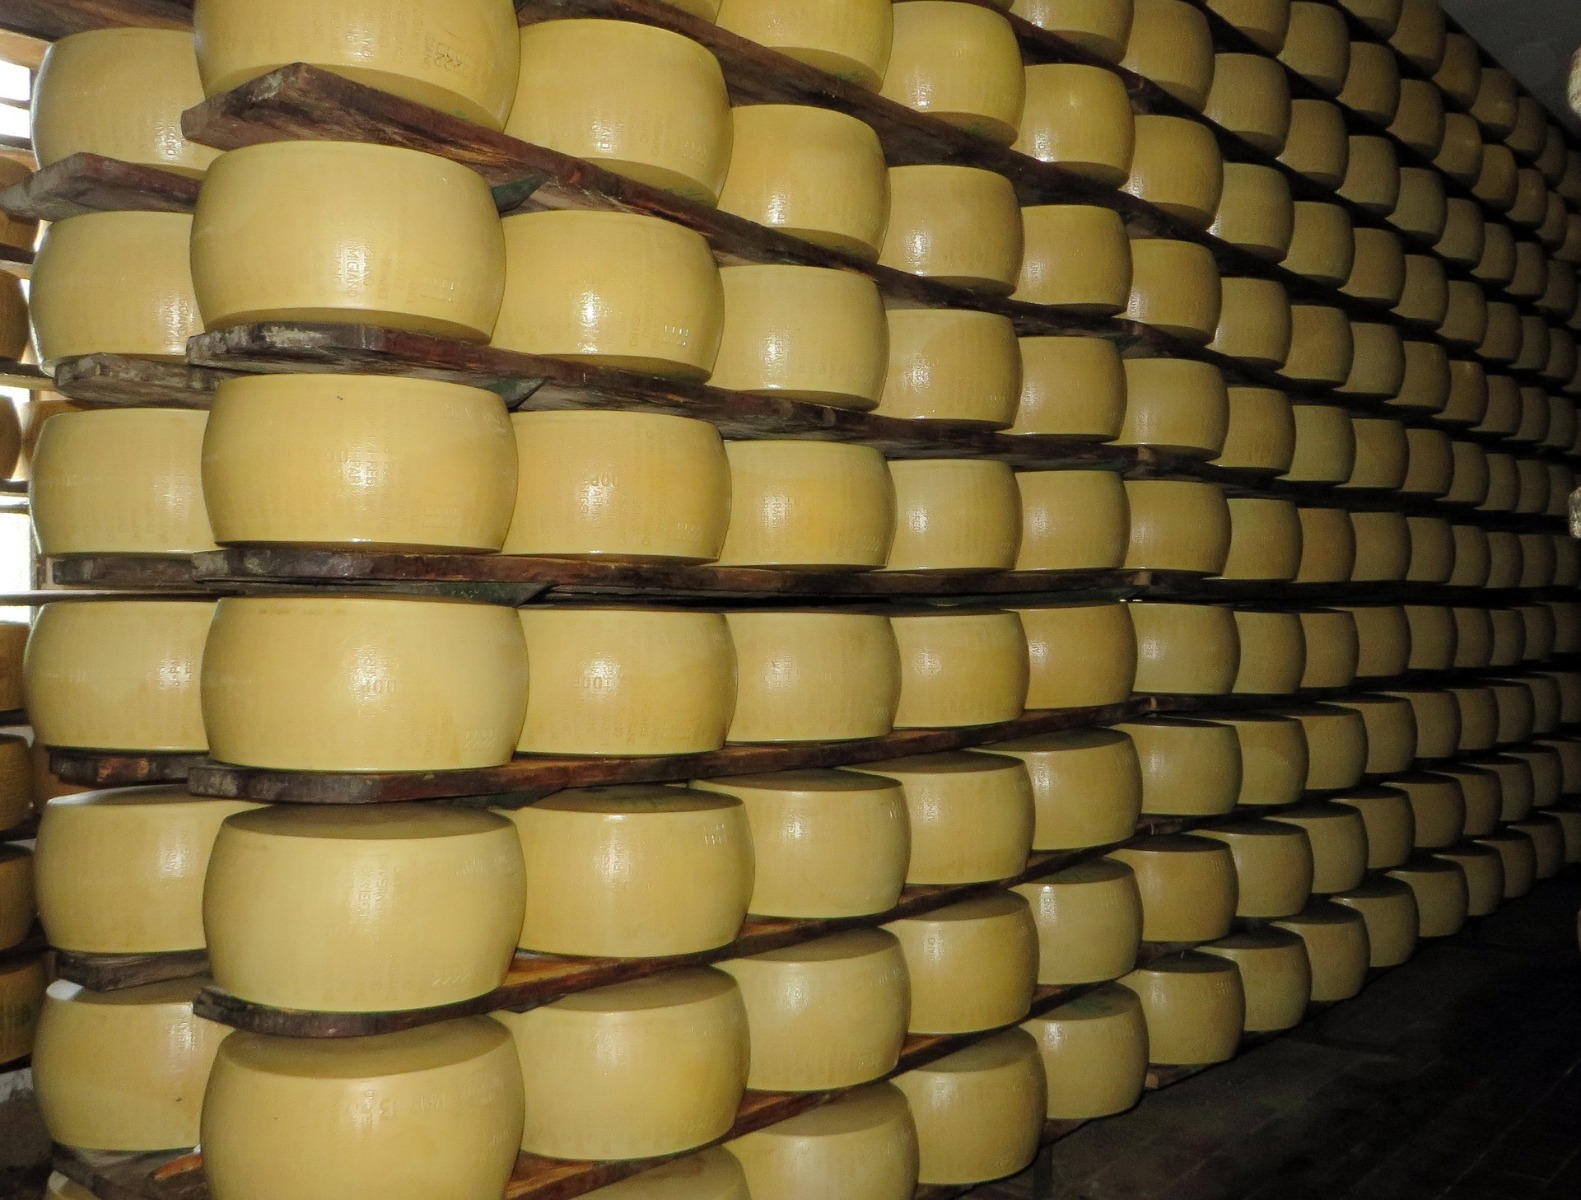 Cheese can create an electrical current